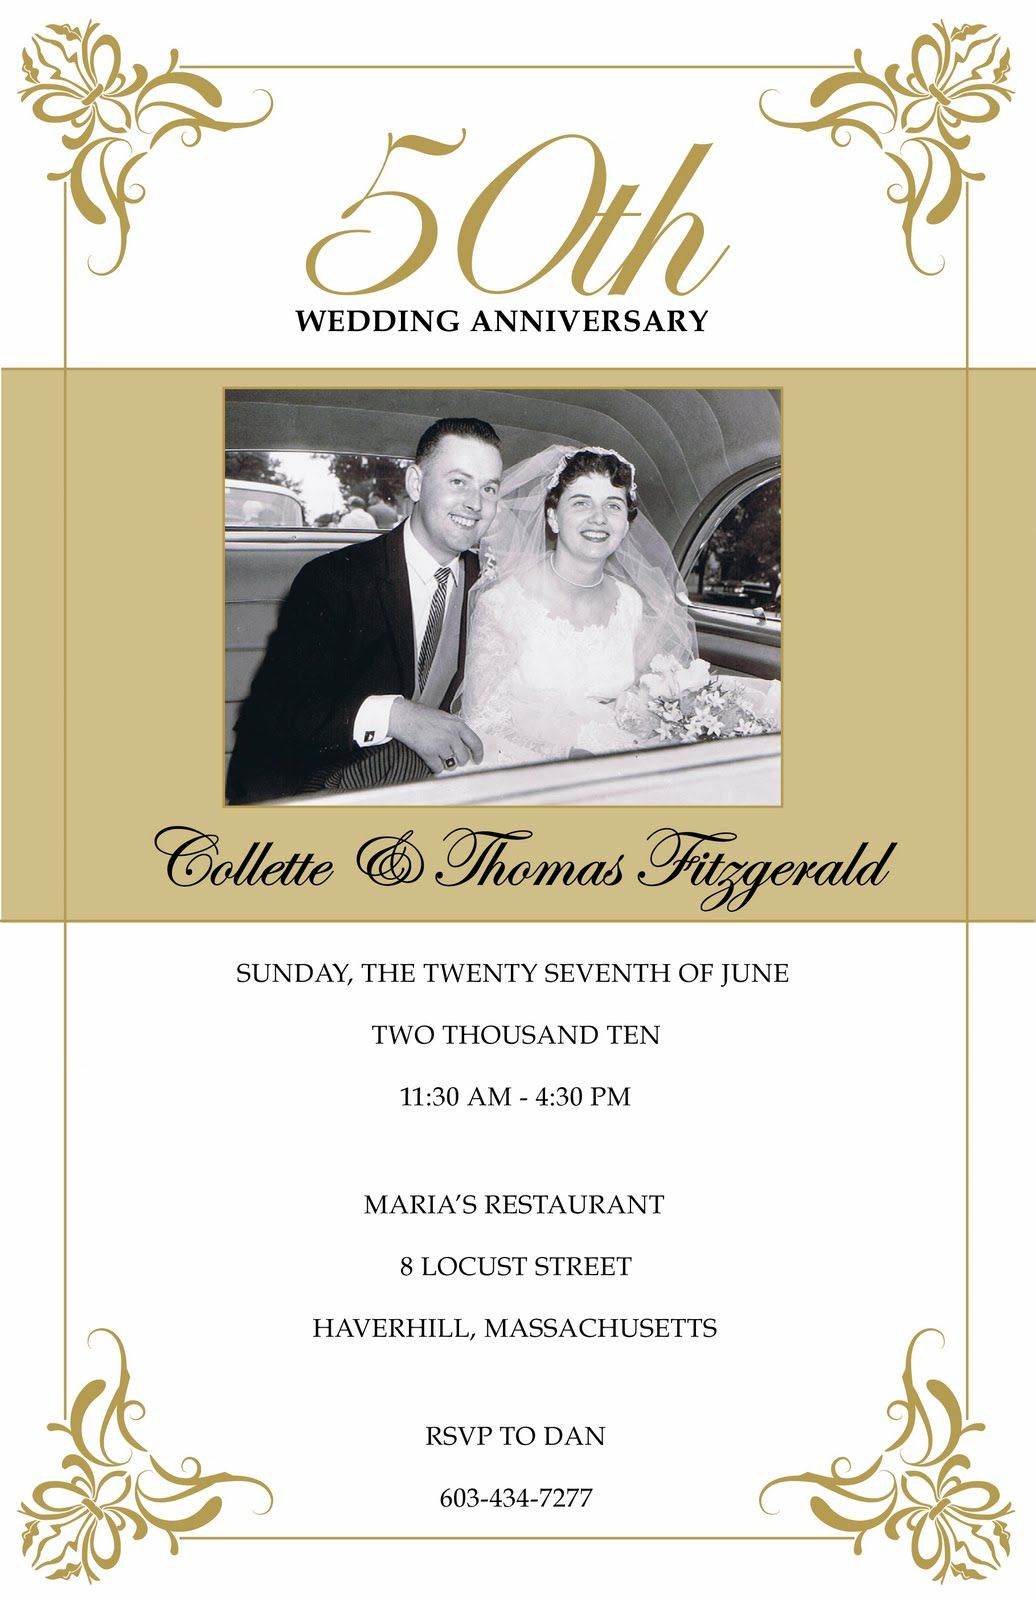 17 Best images about 50th wedding anniversary – 50th Wedding Anniversary Invitation Templates